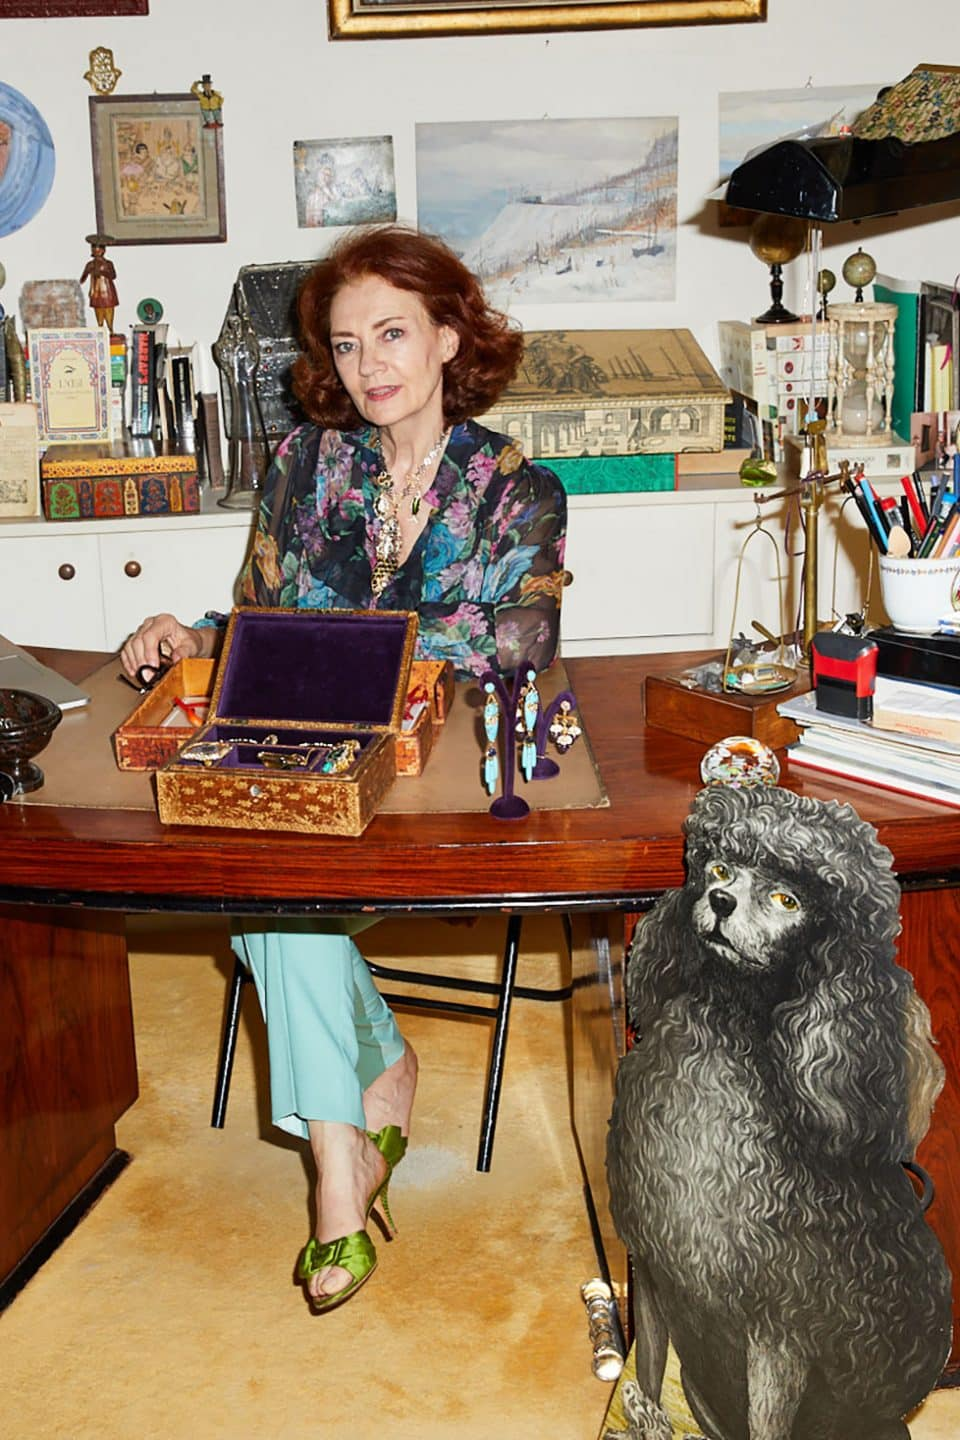 Sylvie Corbelin's Paris Home Is as Bohemian as Her Jewelry Creations